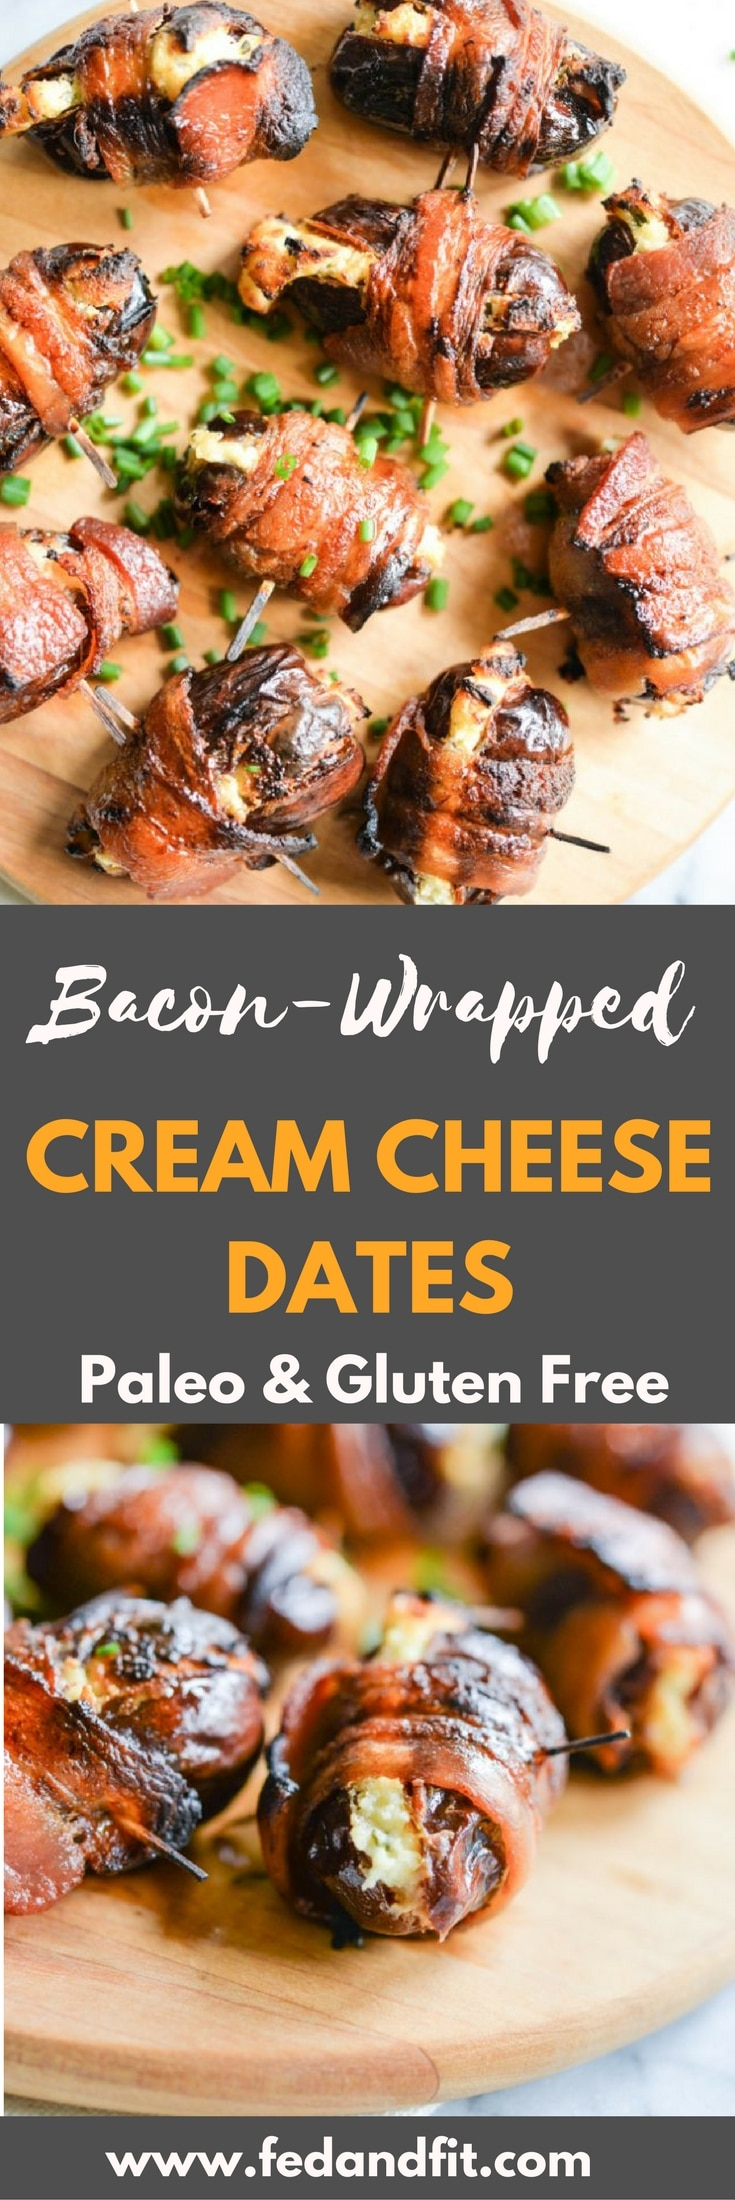 These bacon-wrapped dates are the perfect, simple, salty-sweet appetizer for your holiday parties this season! Dates are stuffed with cream cheese (Paleo option included), wrapped in bacon, and crisped to perfection!